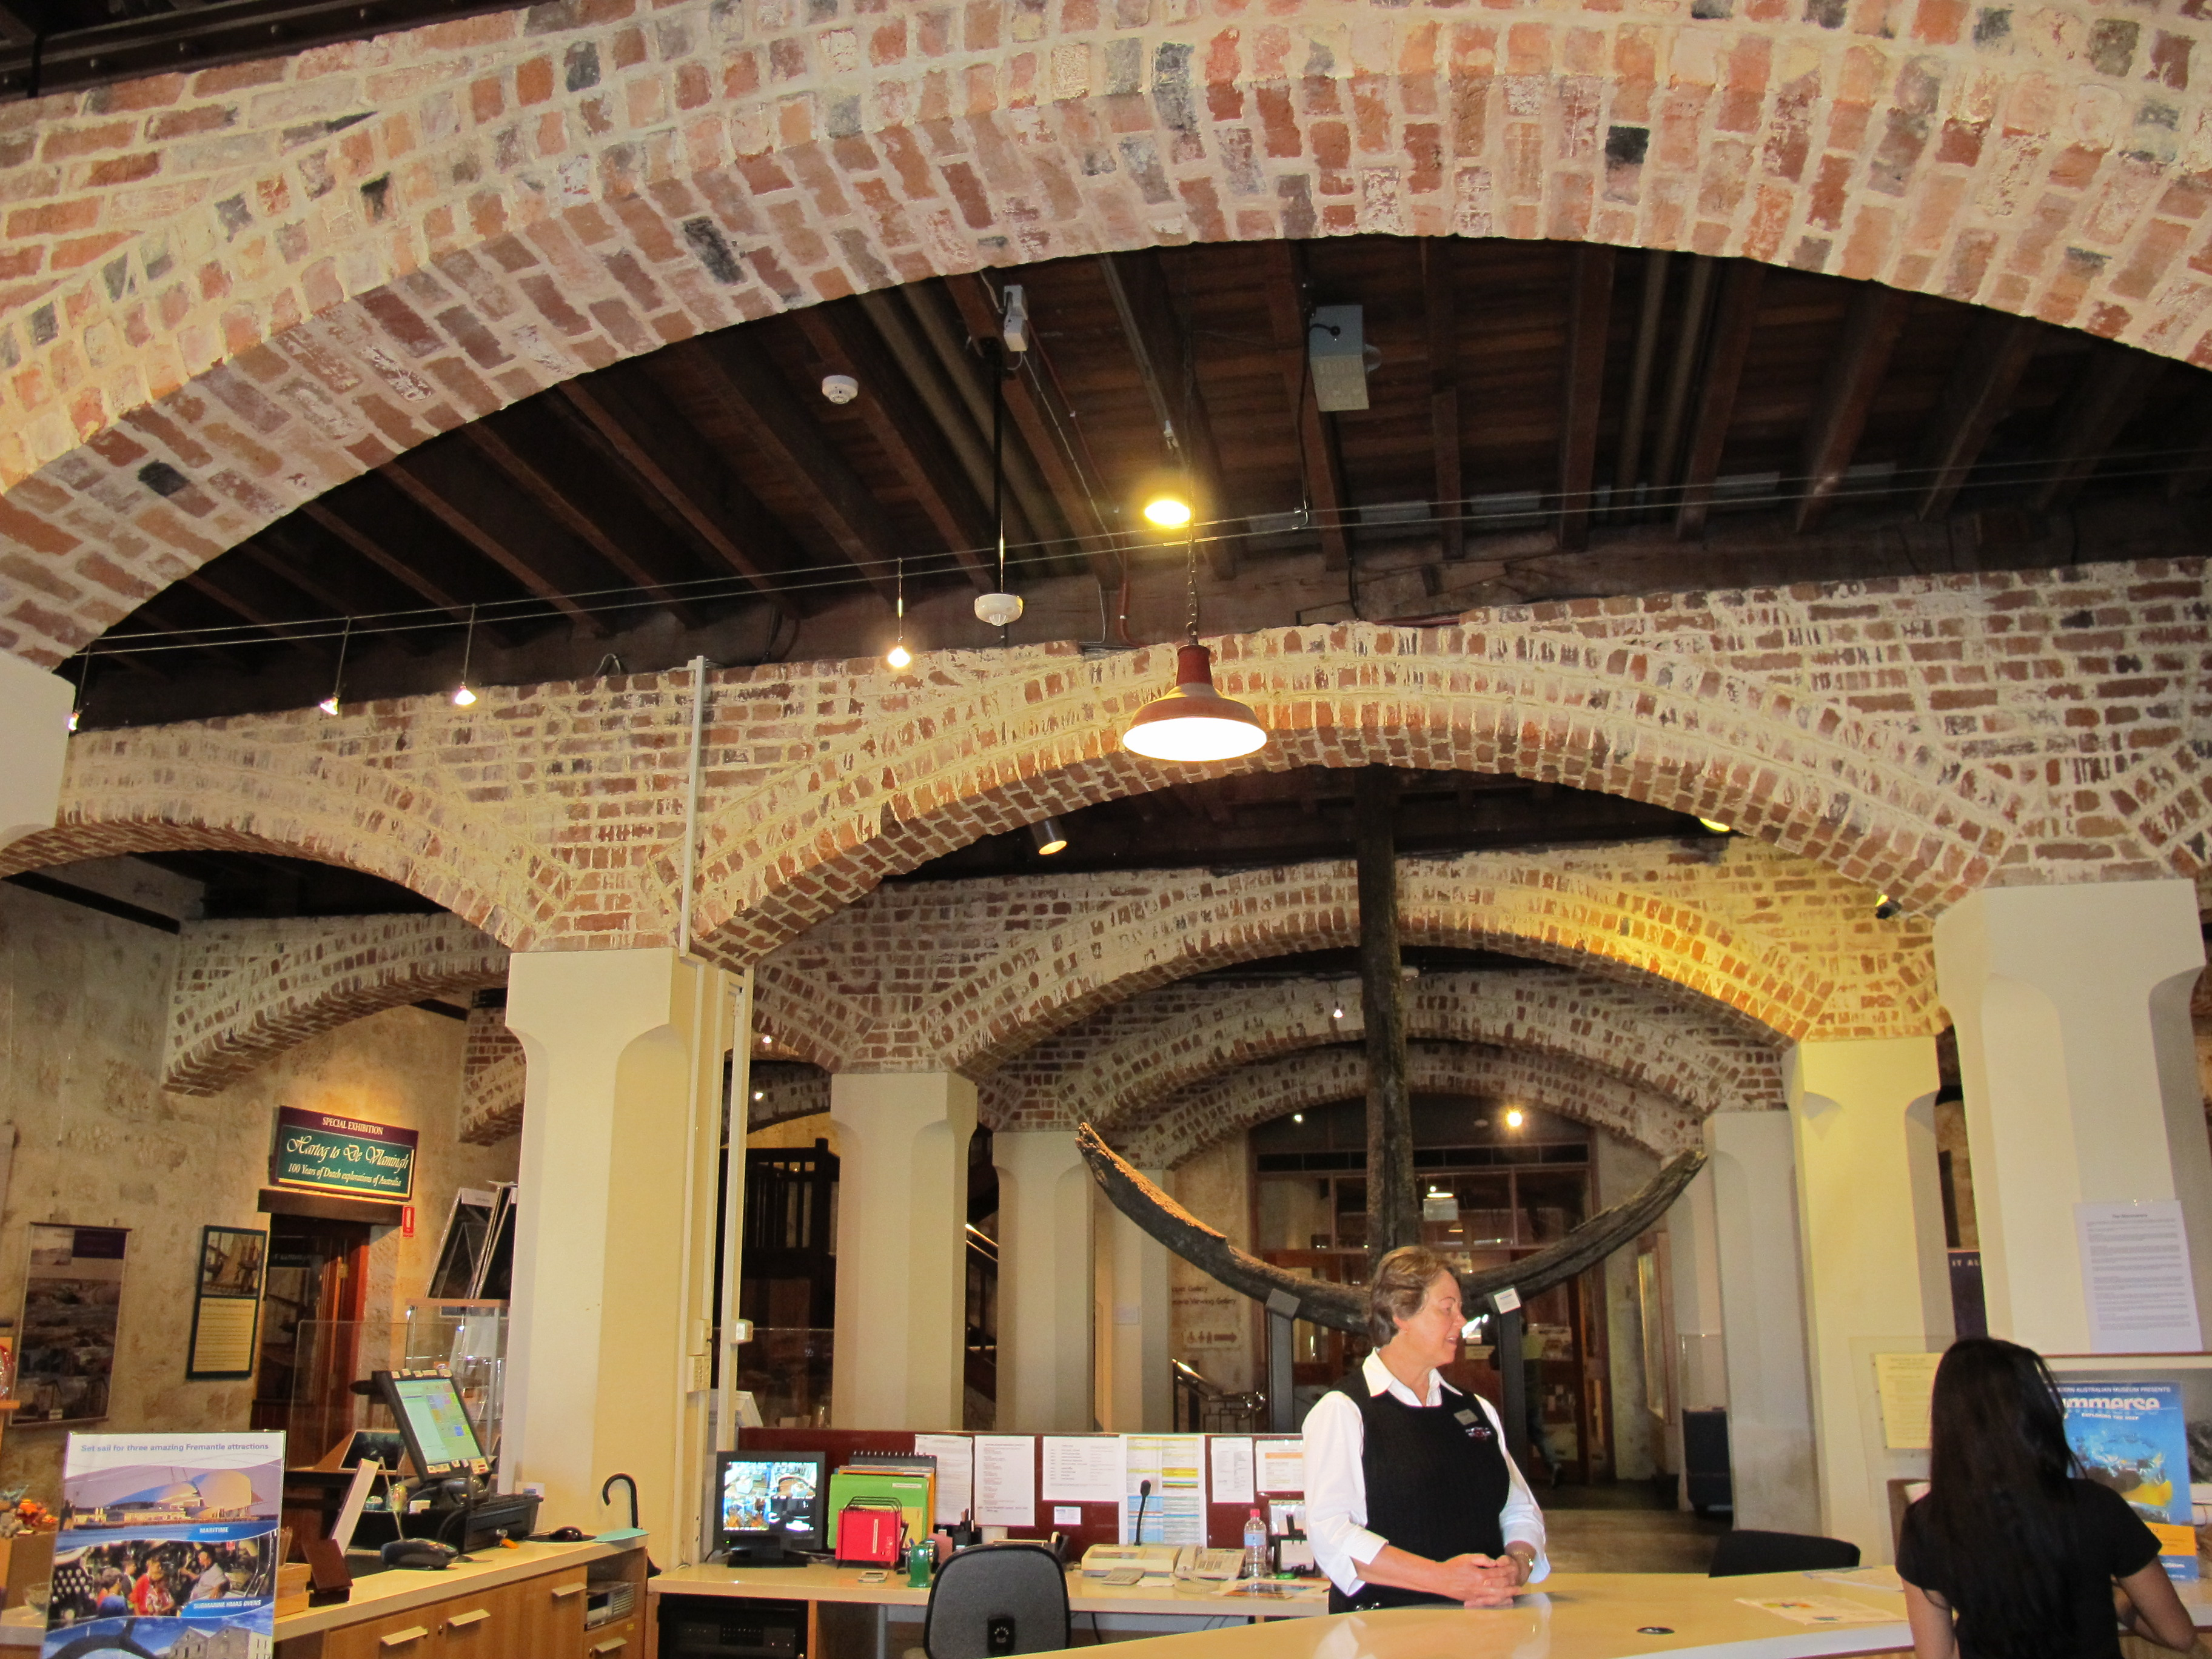 oostryck maritime museum brick arches wikimedia commons